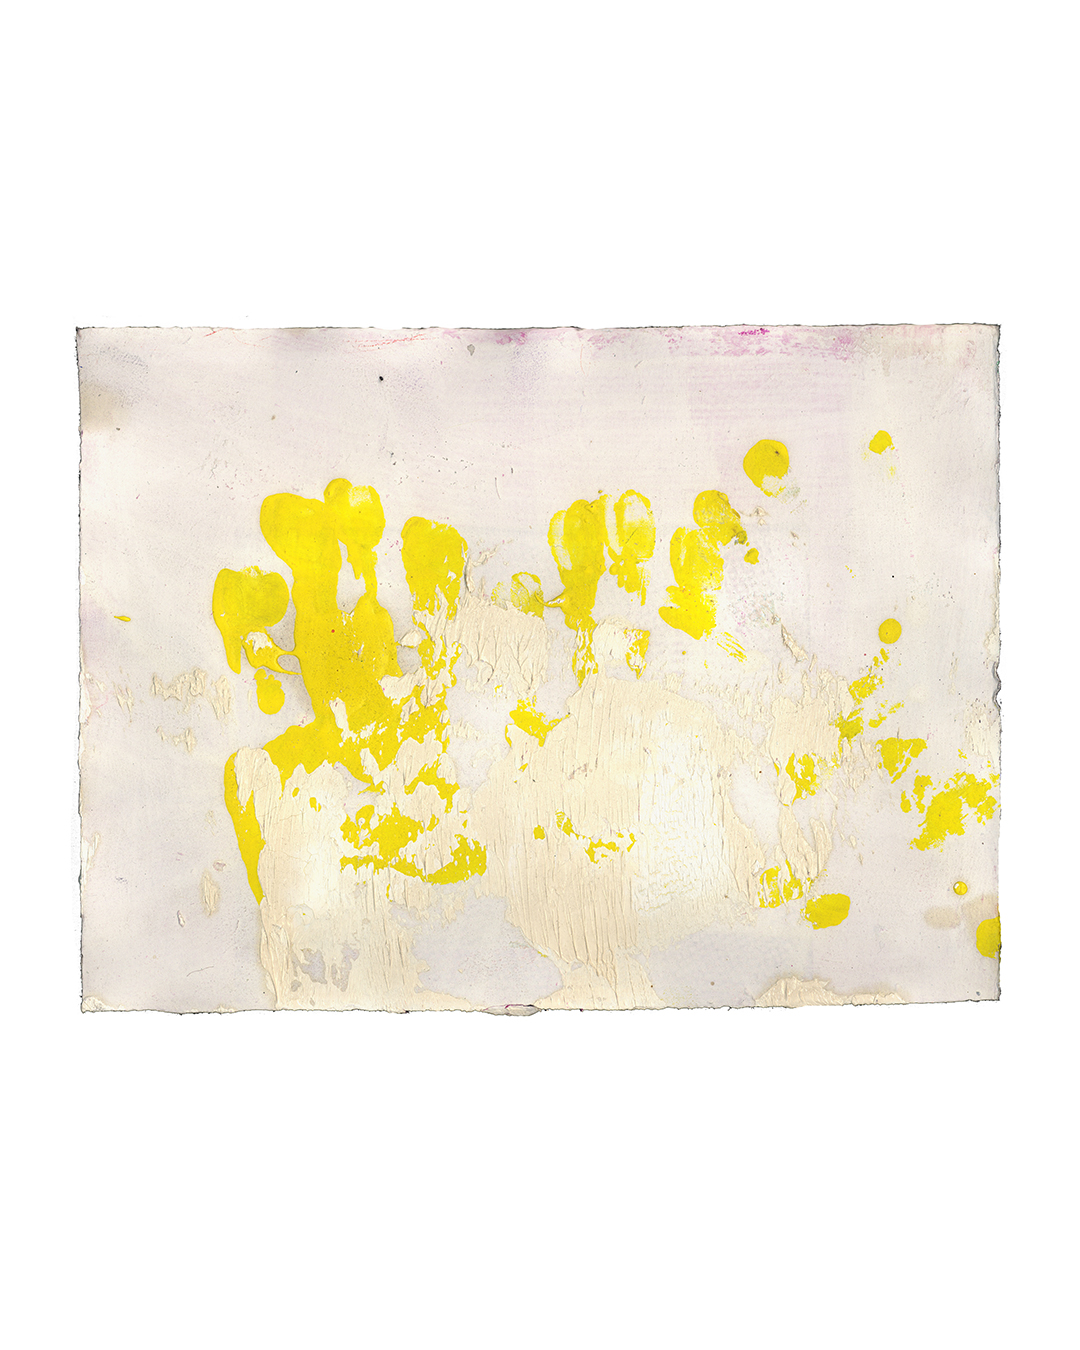 Piet Dieleman, untitled, 2020, painting, oil, tempera paint on paper, 390 x 280 mm, €930